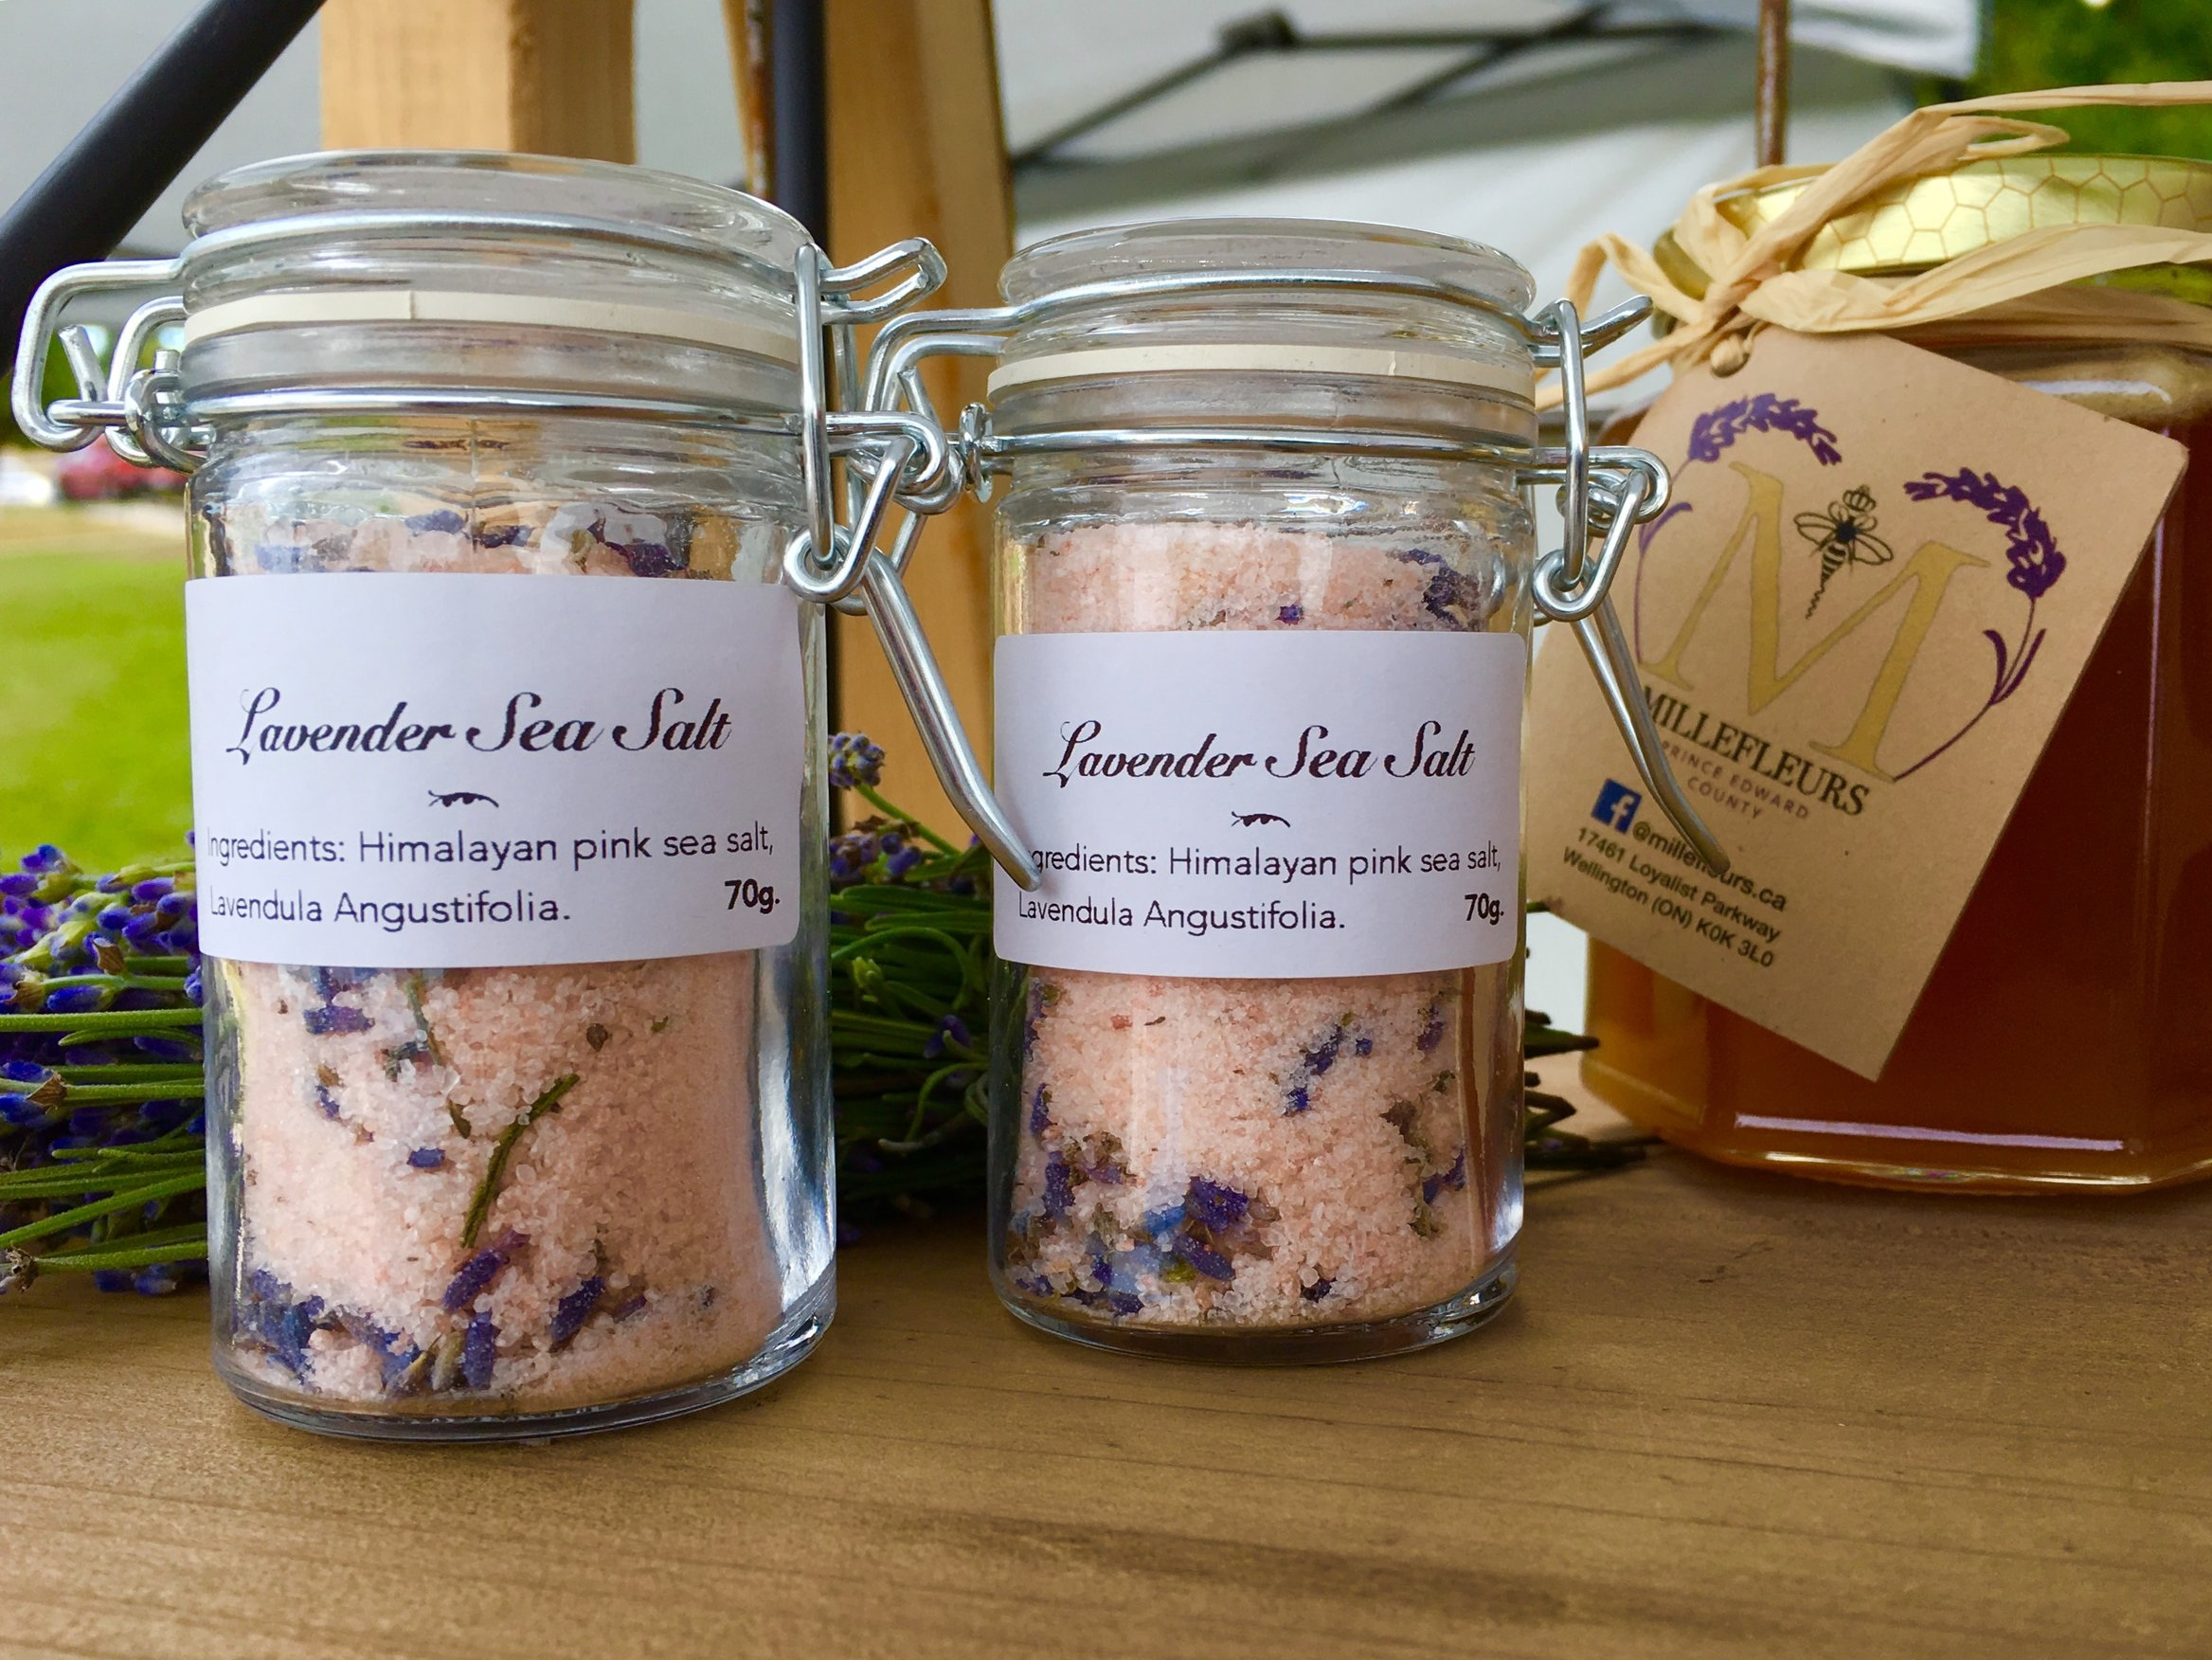 Lavender Sea Salt - Pink Himalayan seasoning salt infused with English Lavender buds.